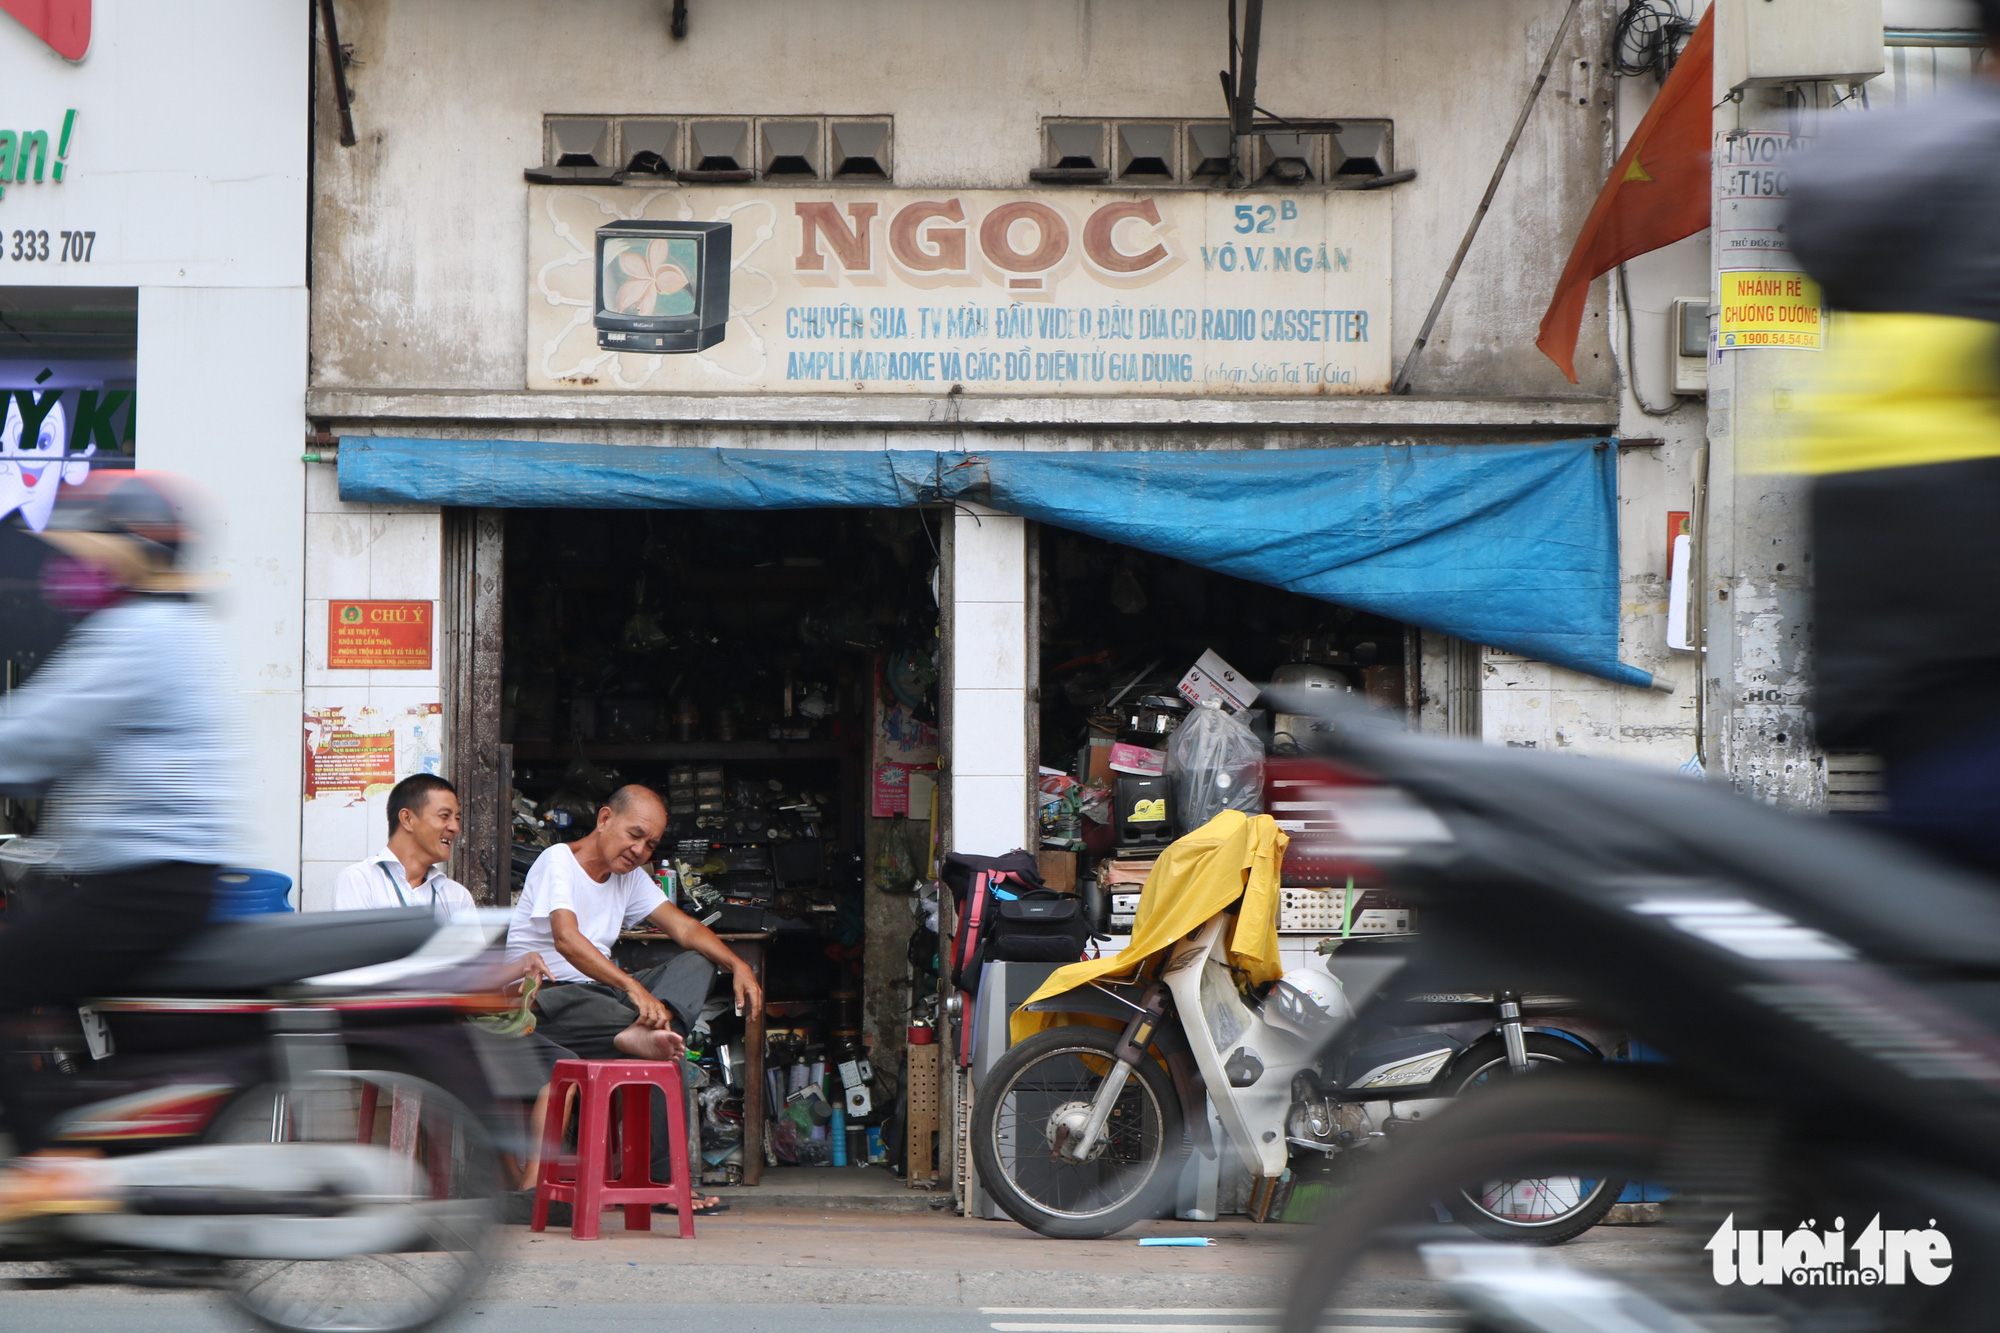 Tran Minh Tri (right) and his son Anh Tu sit in front of their radio repair shop on Vo Van Ngan Street in Thu Duc District, Ho Chi Minh City. Photo: Hoang An / Tuoi Tre